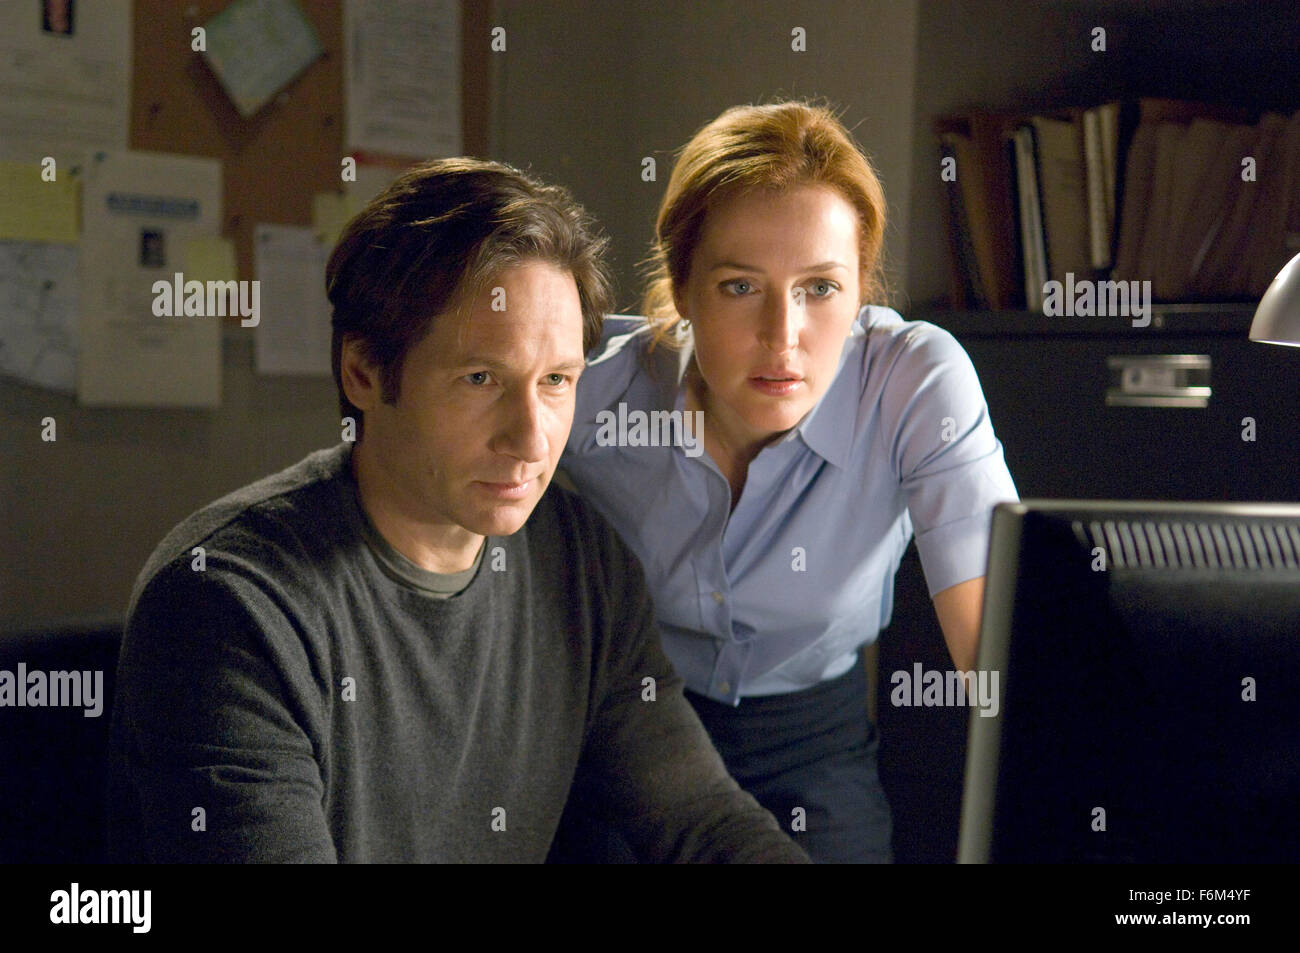 RELEASE DATE: July 25, 2008. MOVIE TITLE: The X-Files: I Want to Believe. STUDIO: 20th Century Fox. PLOT: Mulder - Stock Image